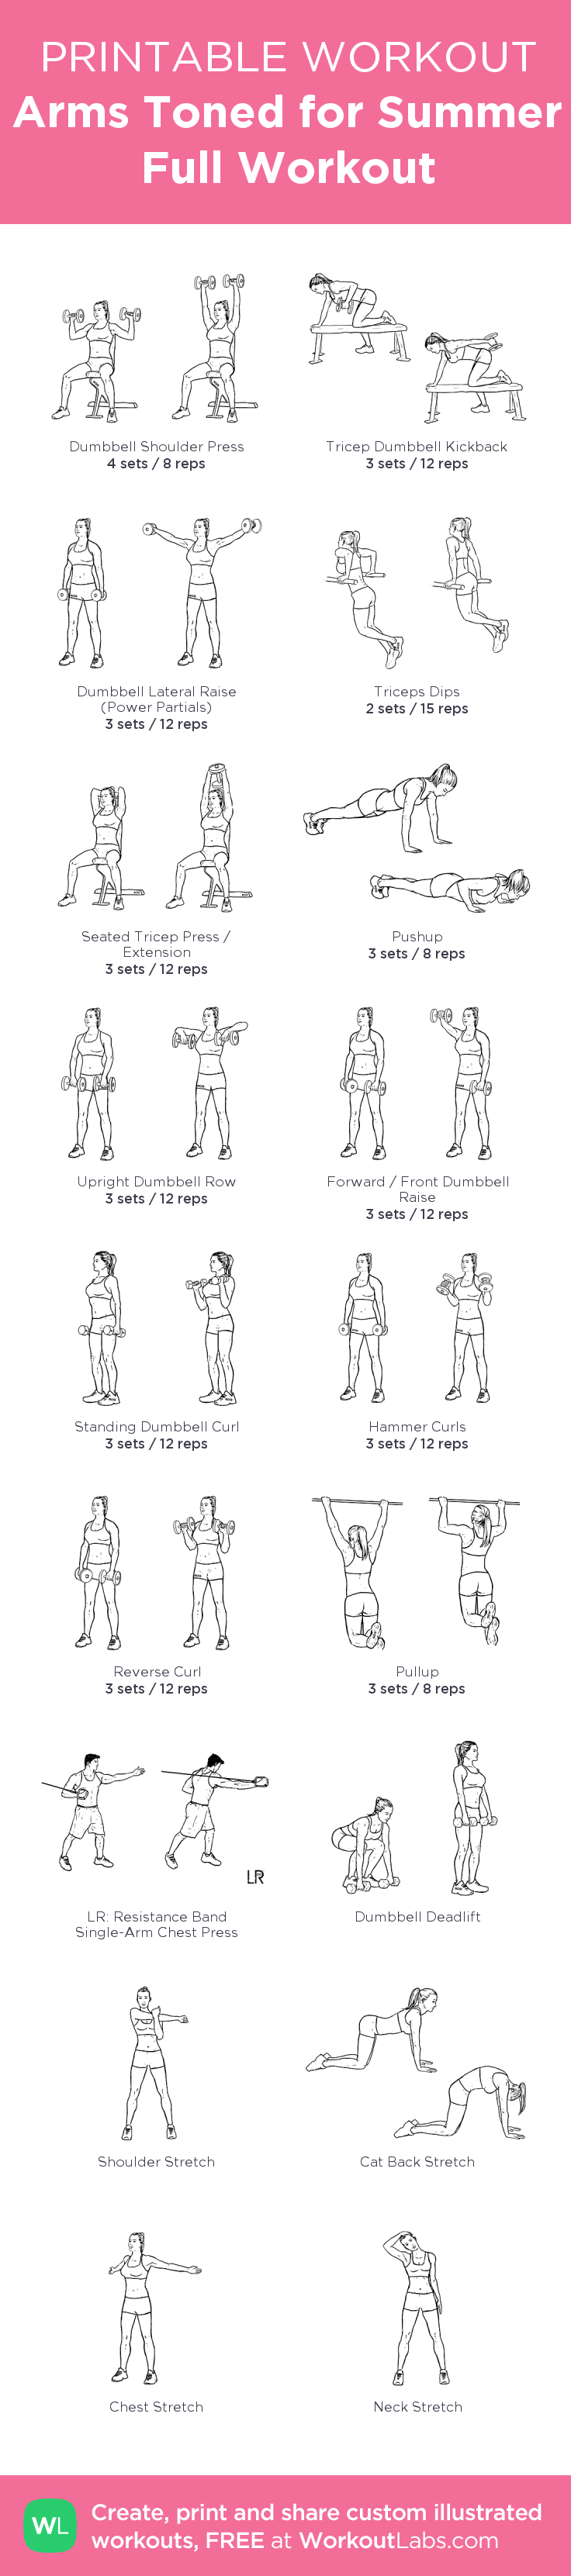 With 6 Triceps Shoulders Workouts Followed By Biceps Back This Makes A Full Upper Body Workout Routines At Home Or The Gym My Custom